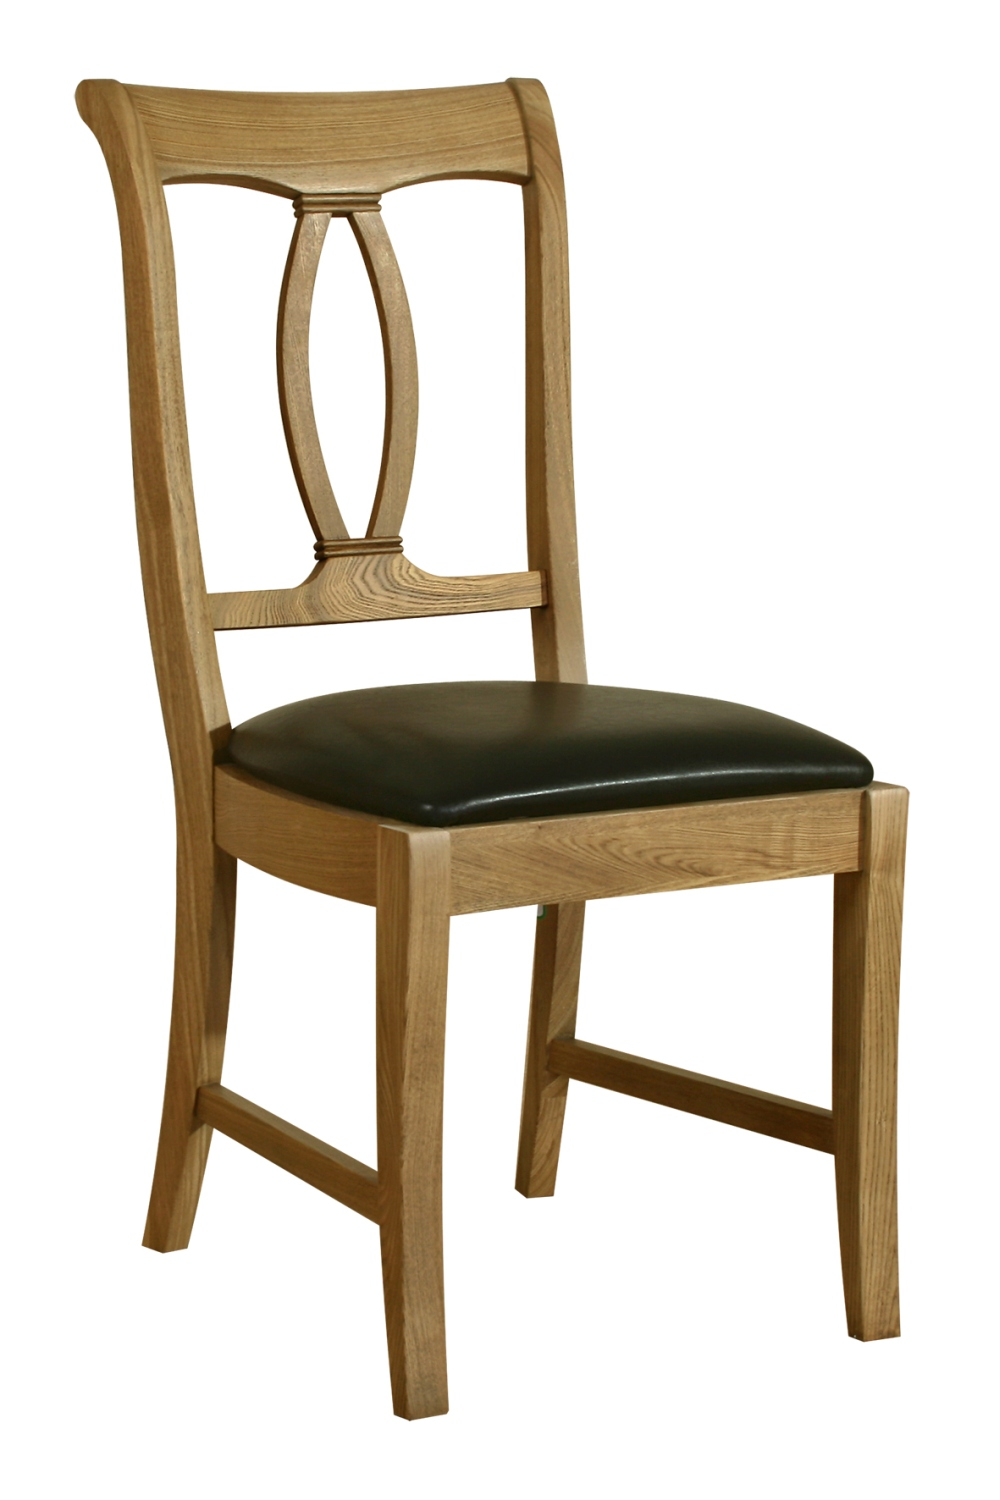 oak dining room chairs ebay download